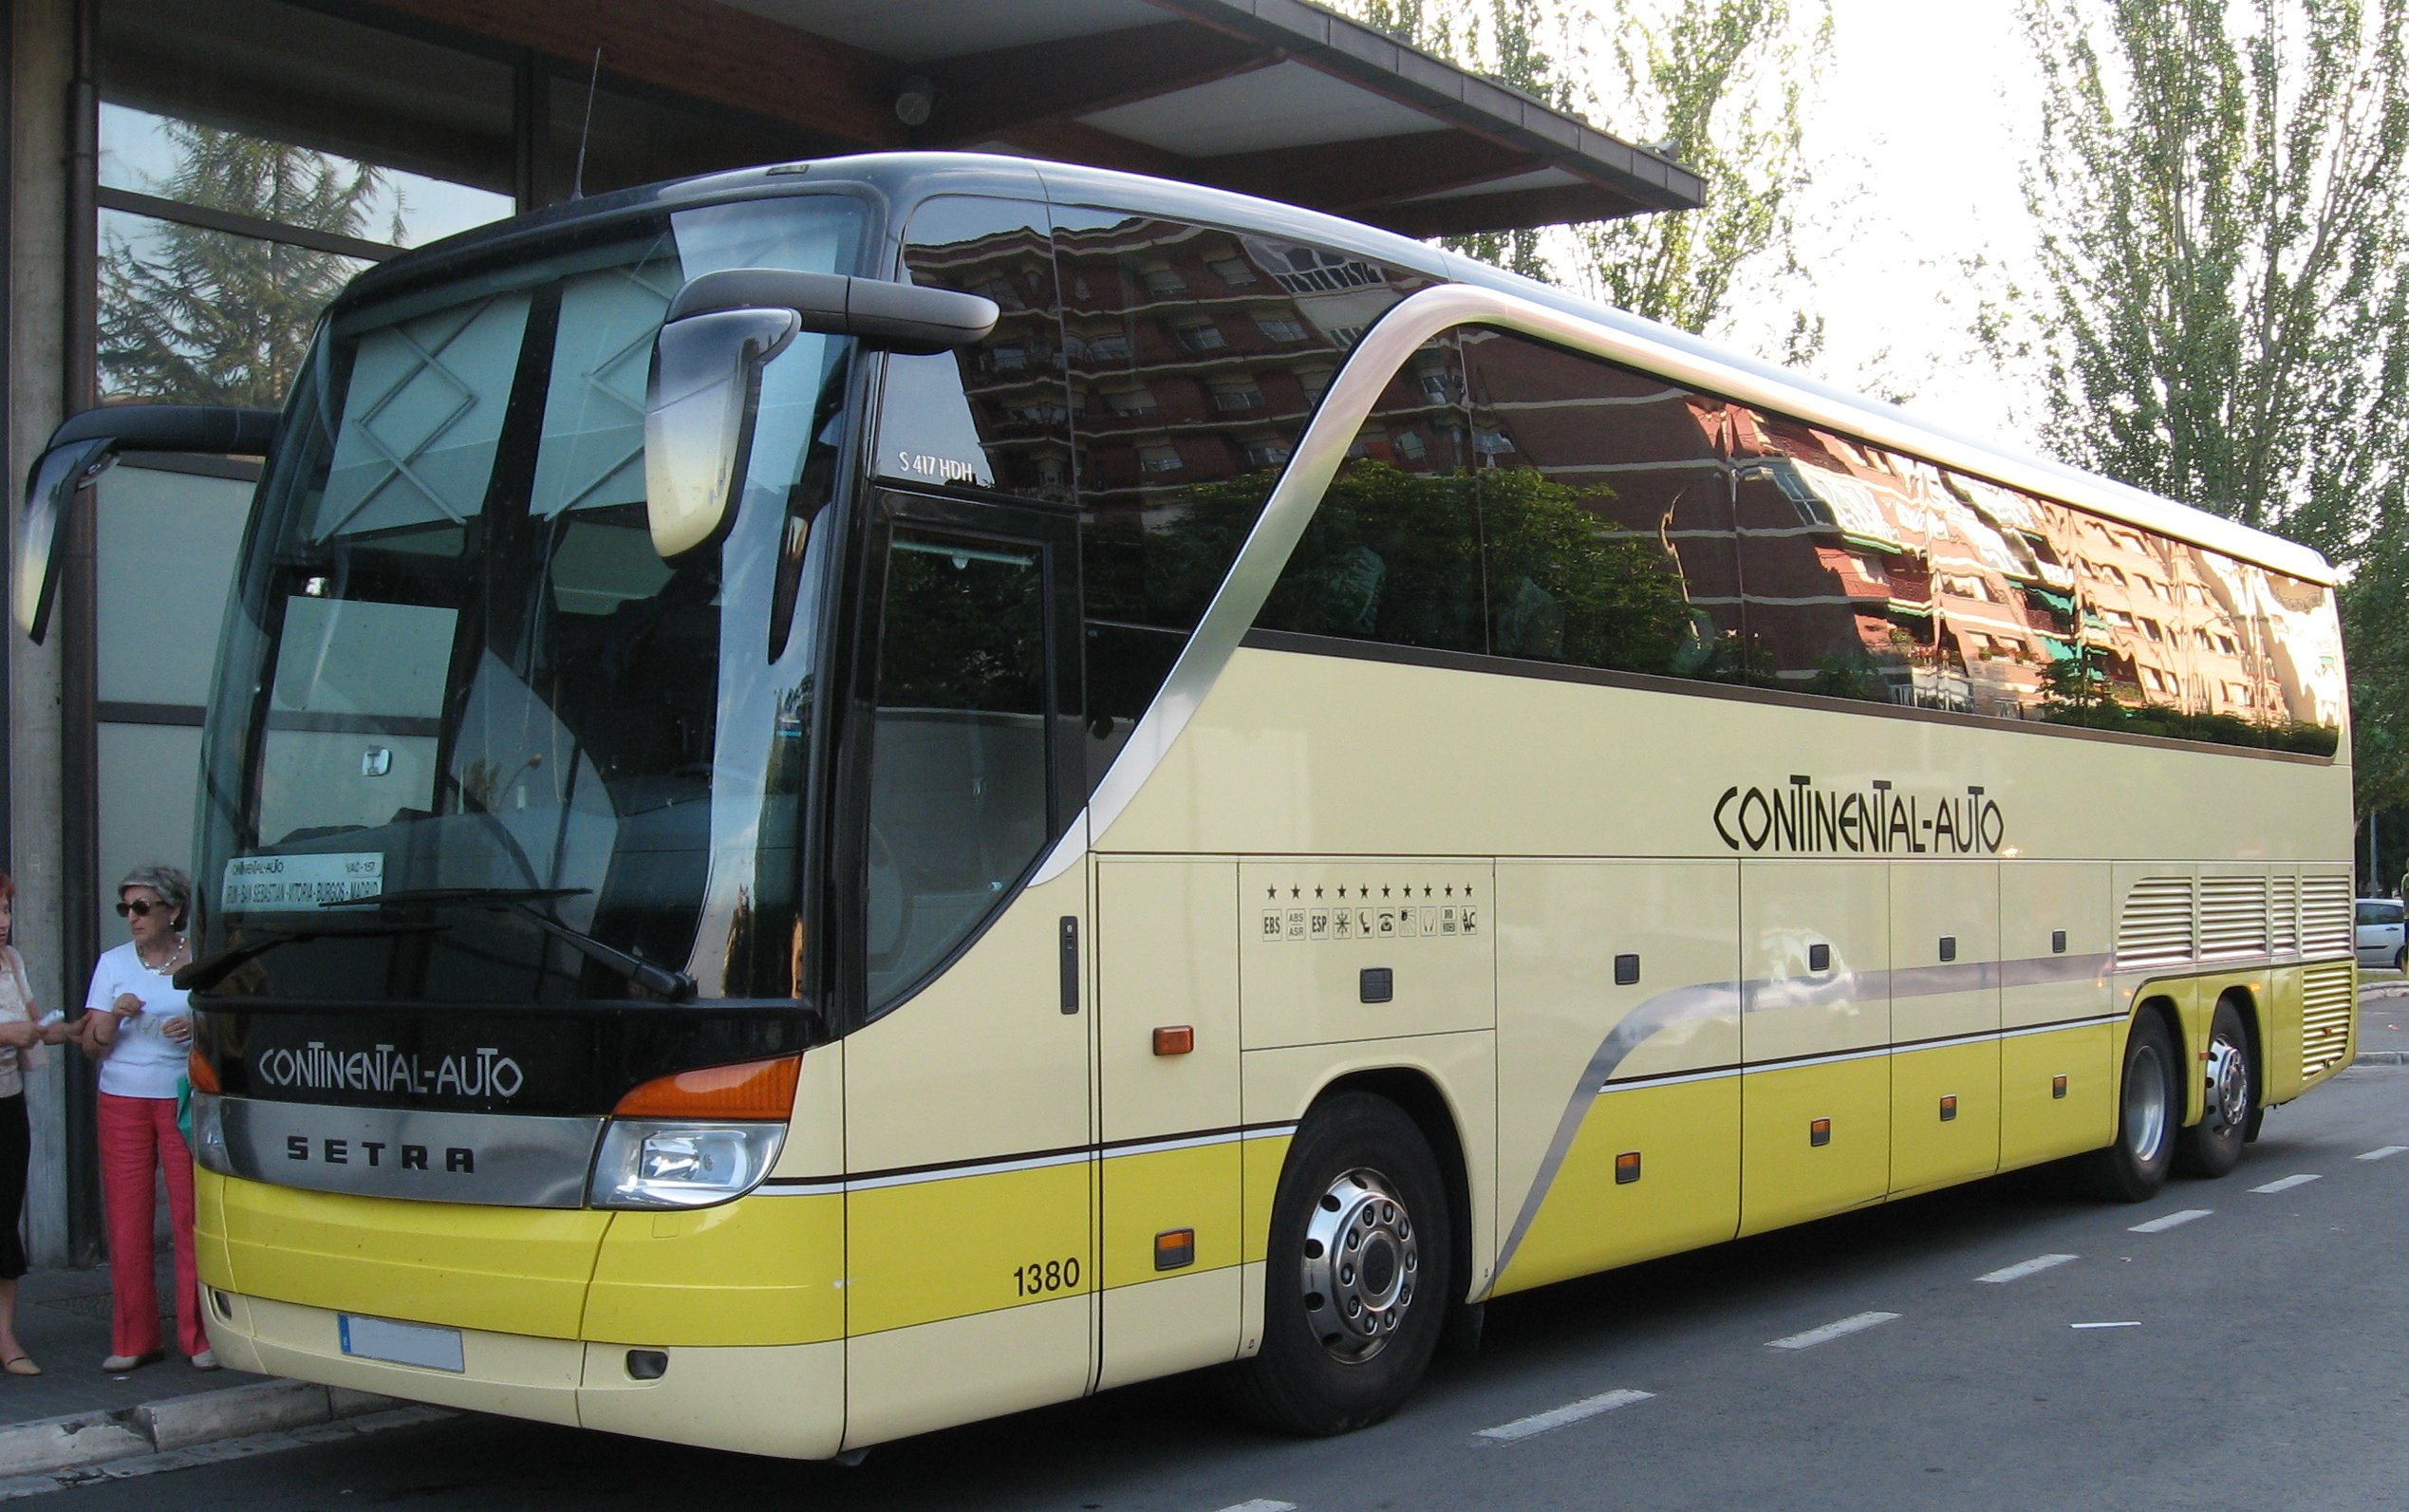 File:Setra S 417 HDH.jpg - Wikimedia Commons